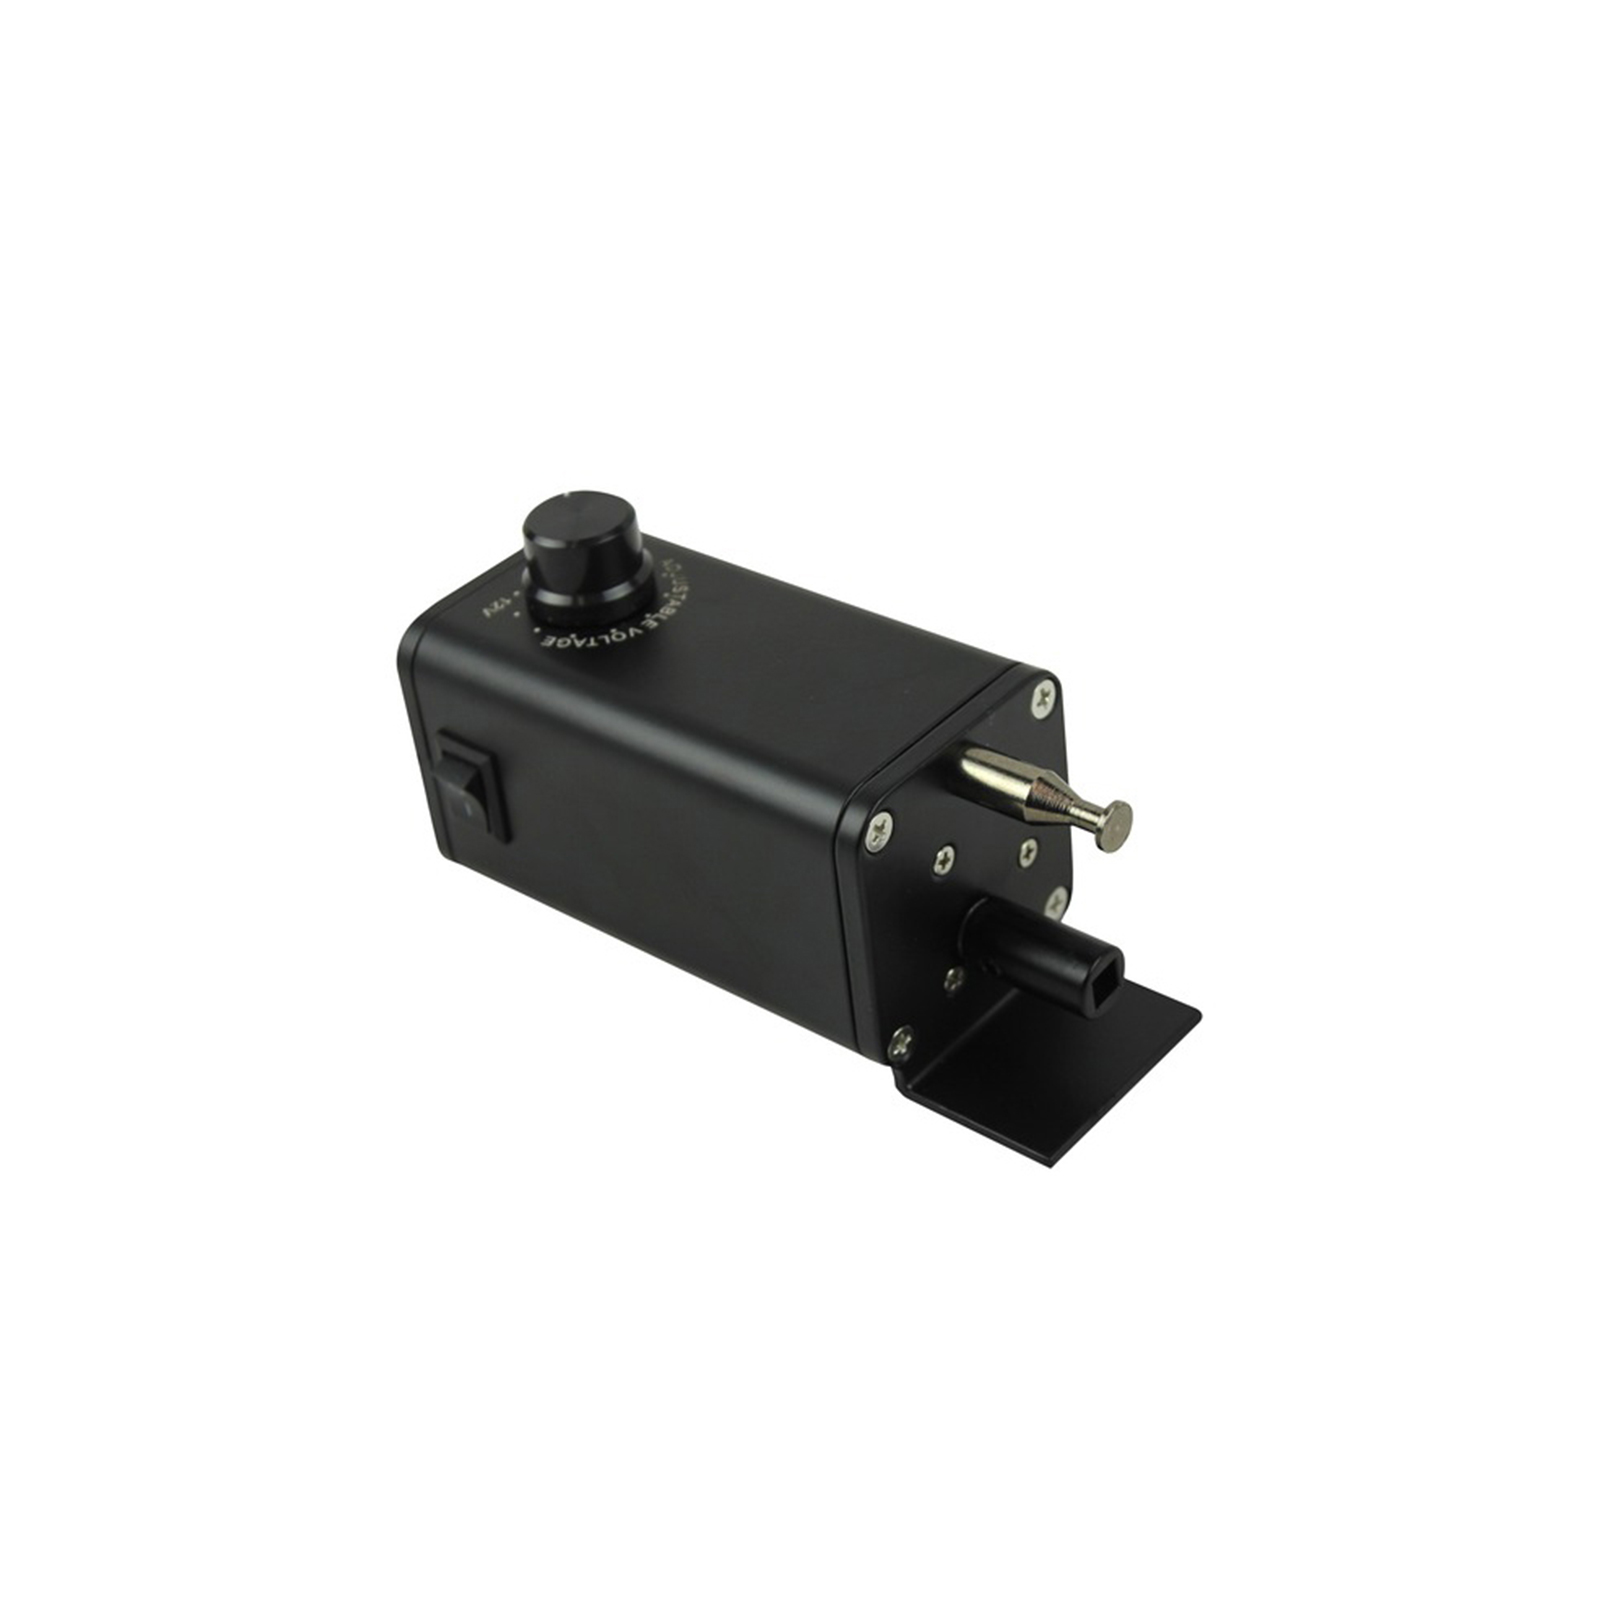 Cyprus Grill Variable Speed Bbq Motor 20kg Capacity W 12v Or 240v Power Adapter Included Cgmms 0107